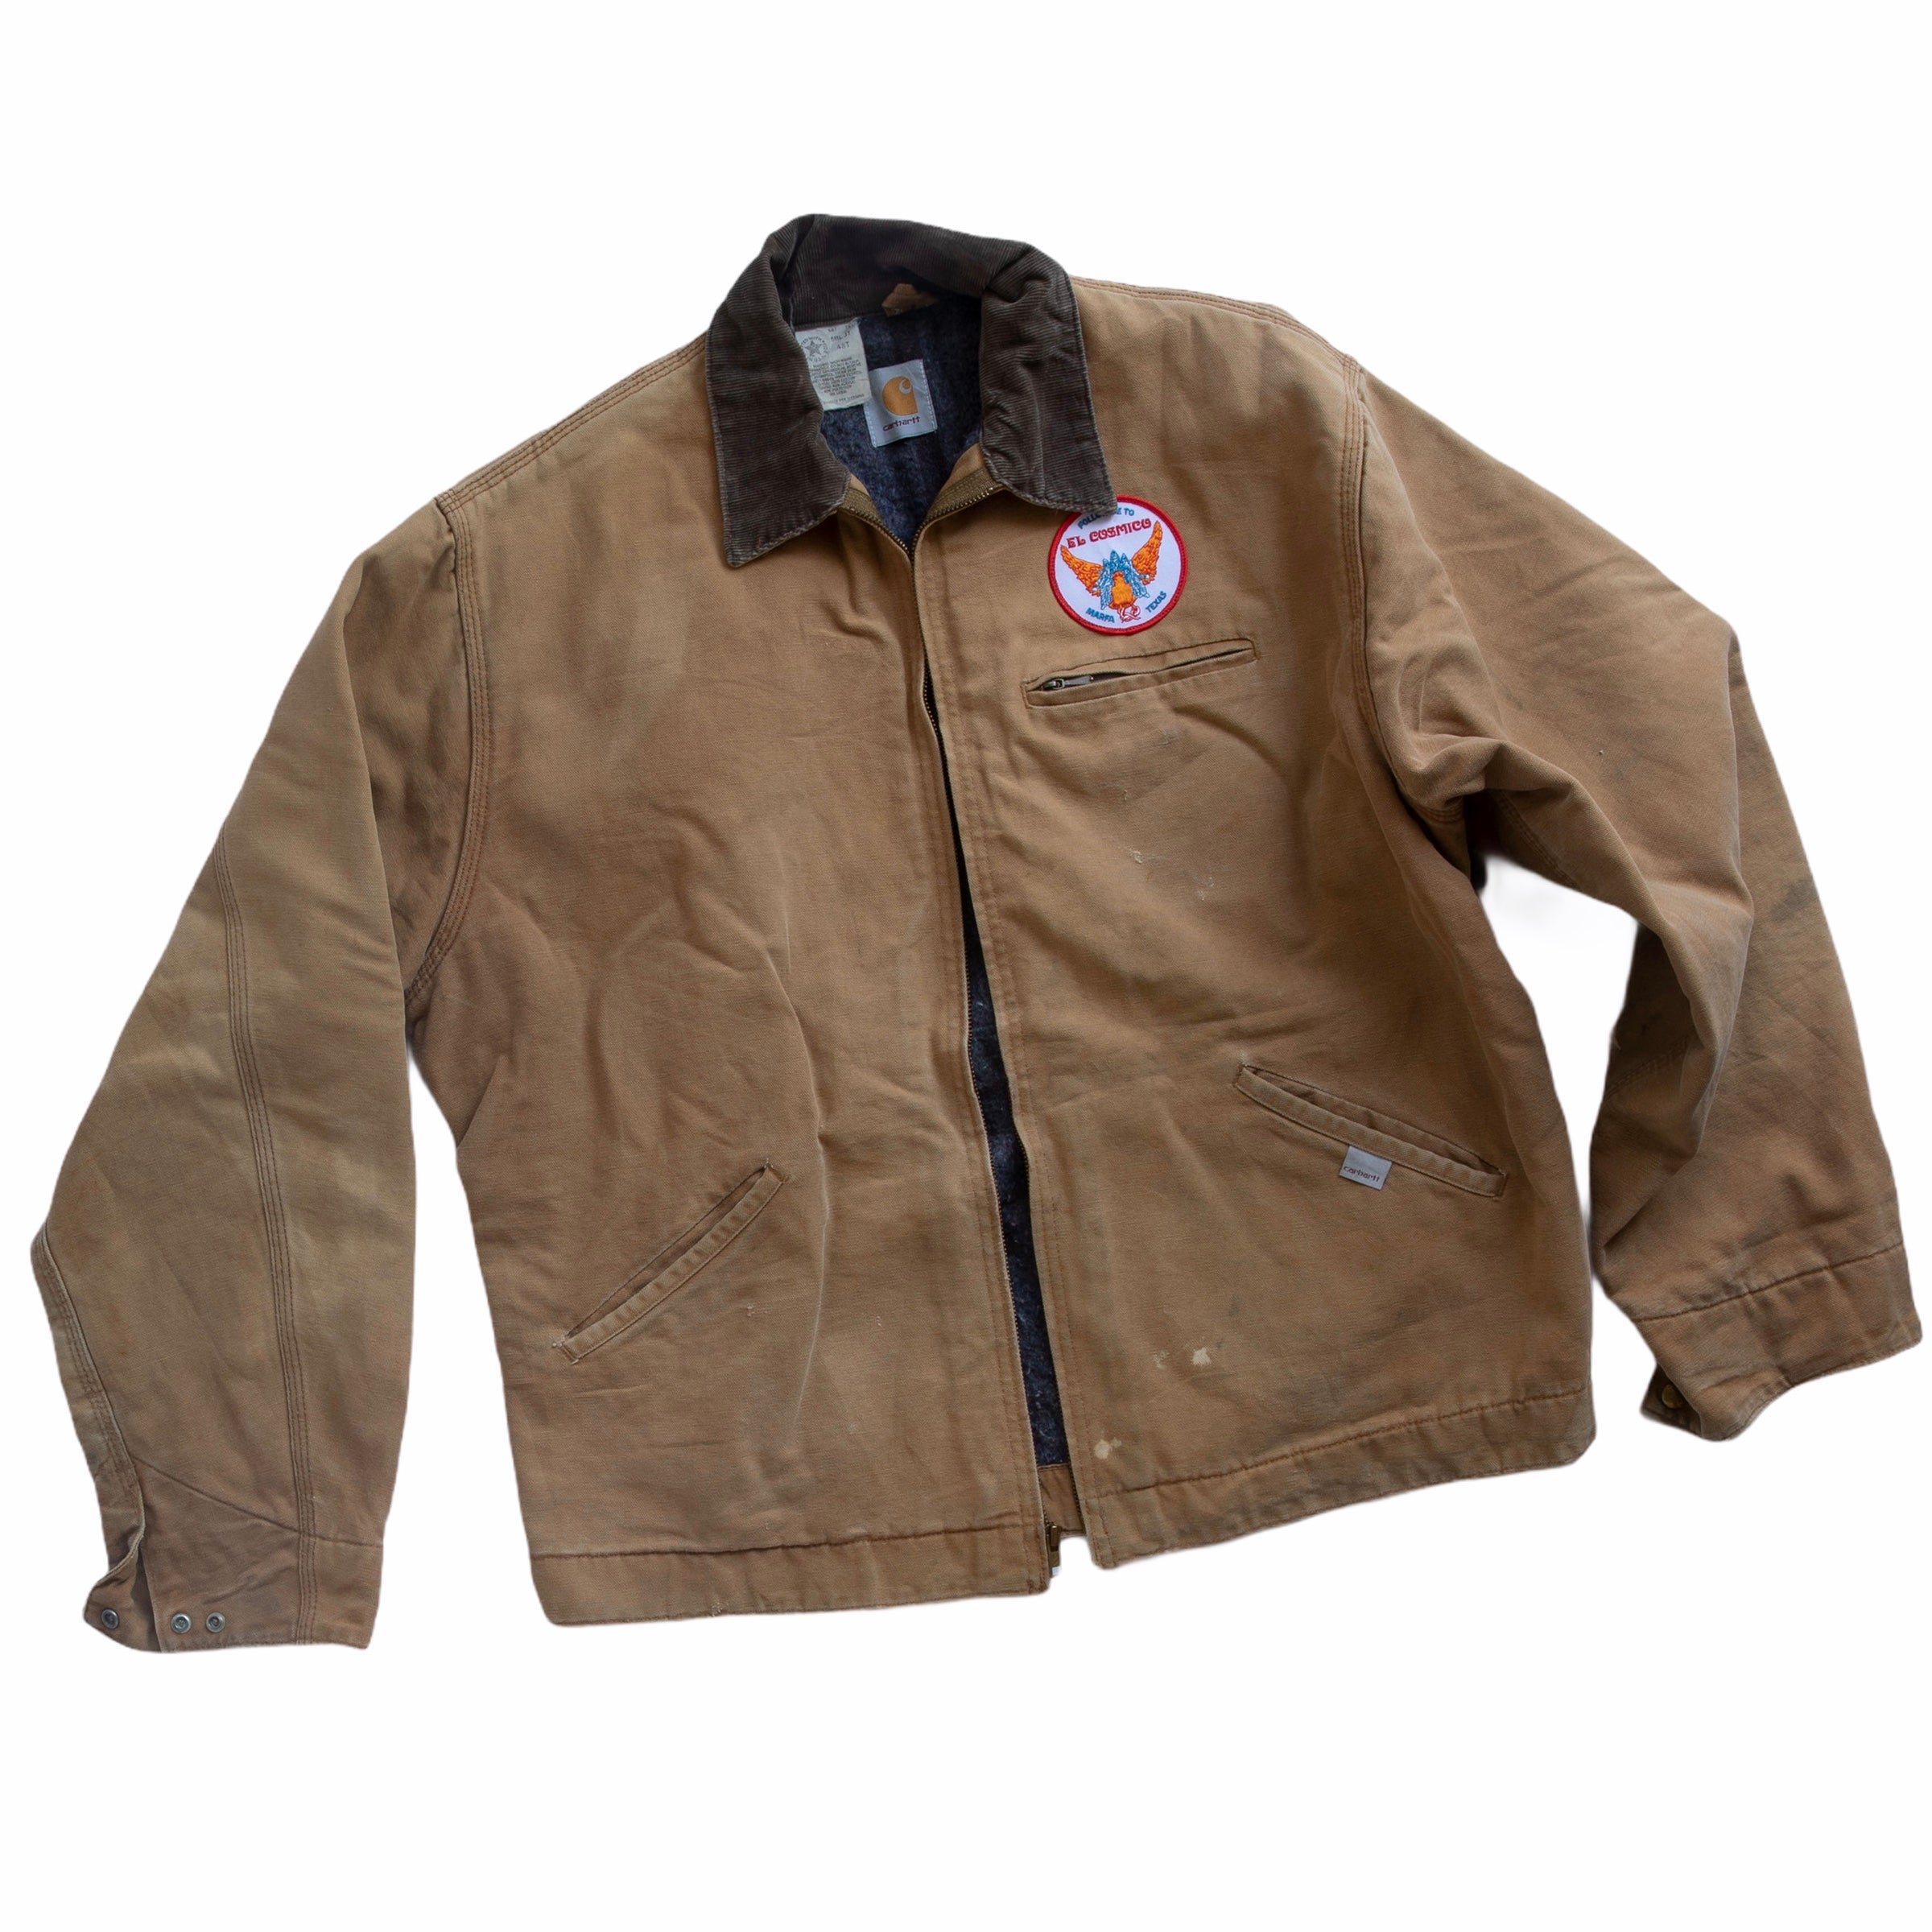 Vintage Carhartt Work Jacket with Garuda Patch